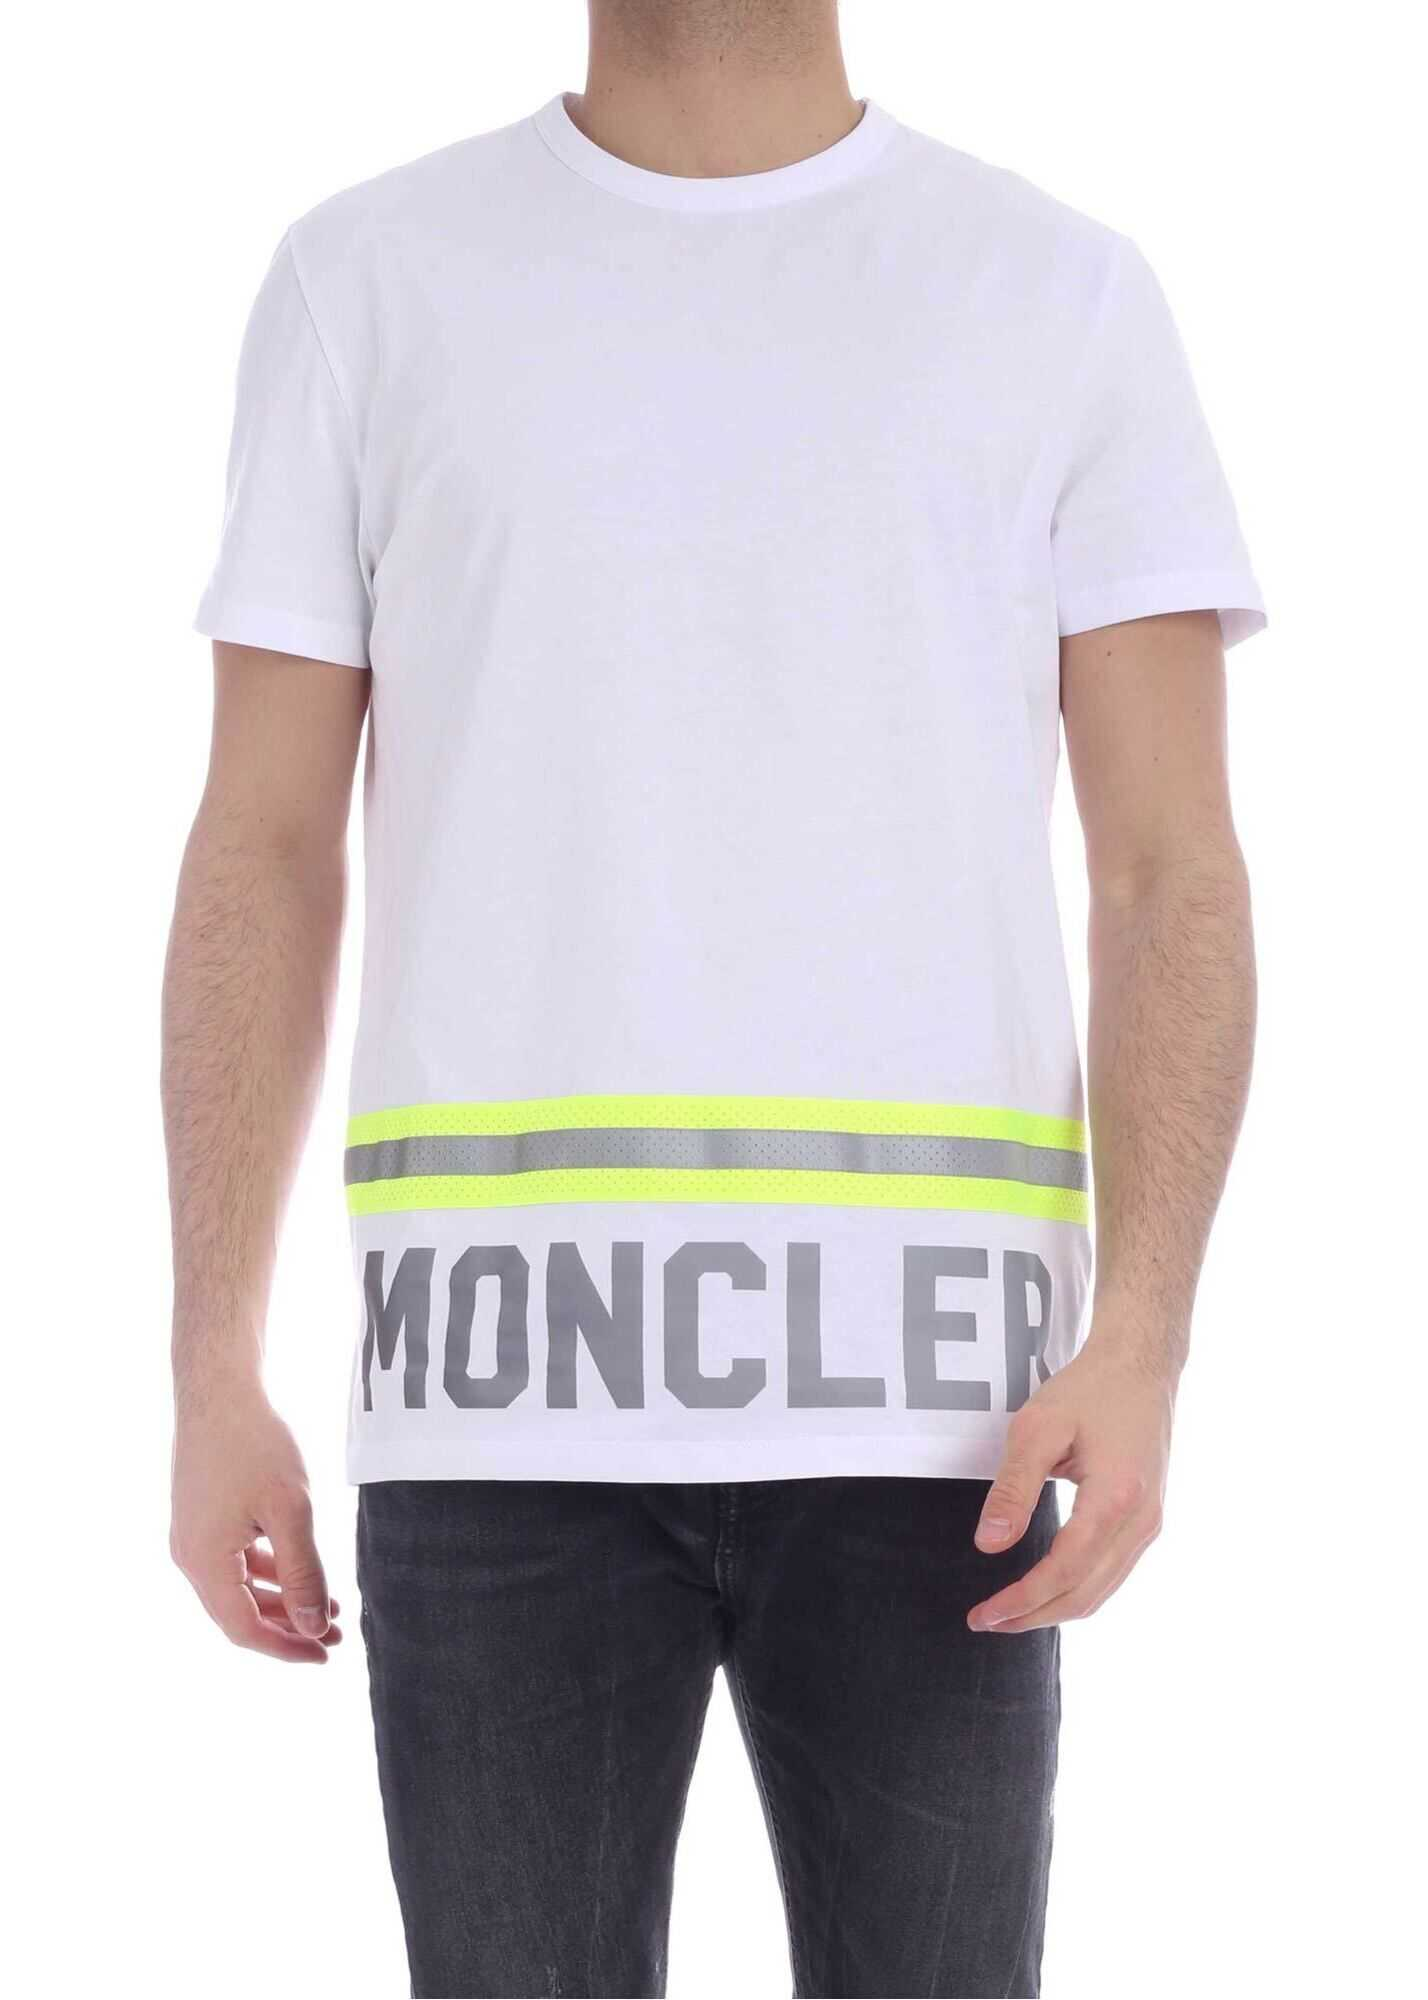 Moncler Fluorescent And Reflective Details T-Shirt In White White